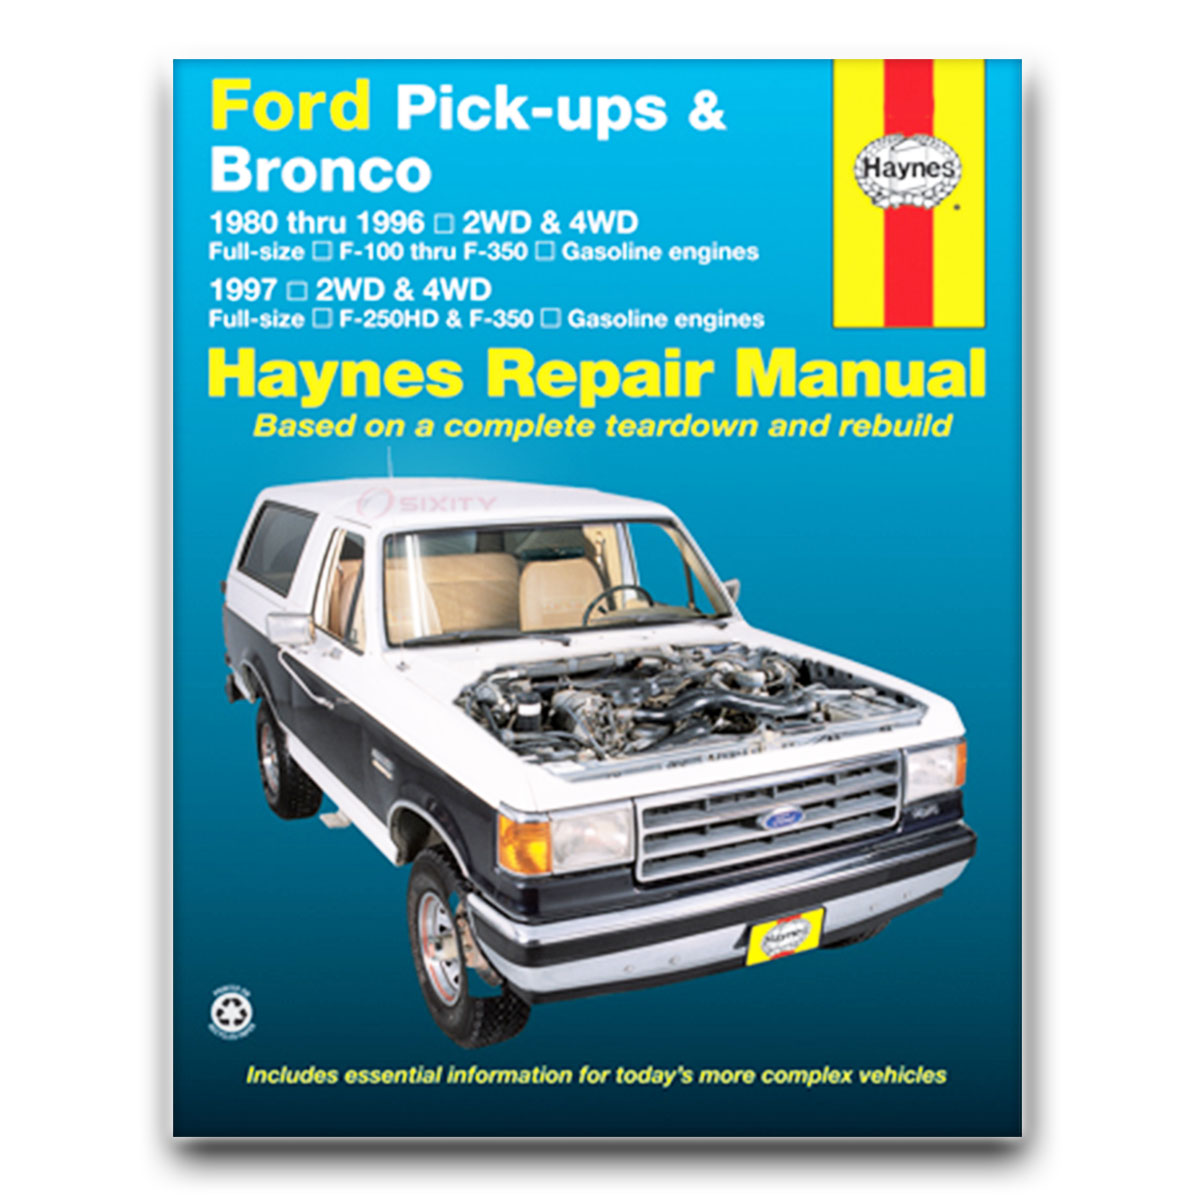 Haynes Repair Manual for Ford F-150 Ranger Lariat XLT XLS Custom Base st